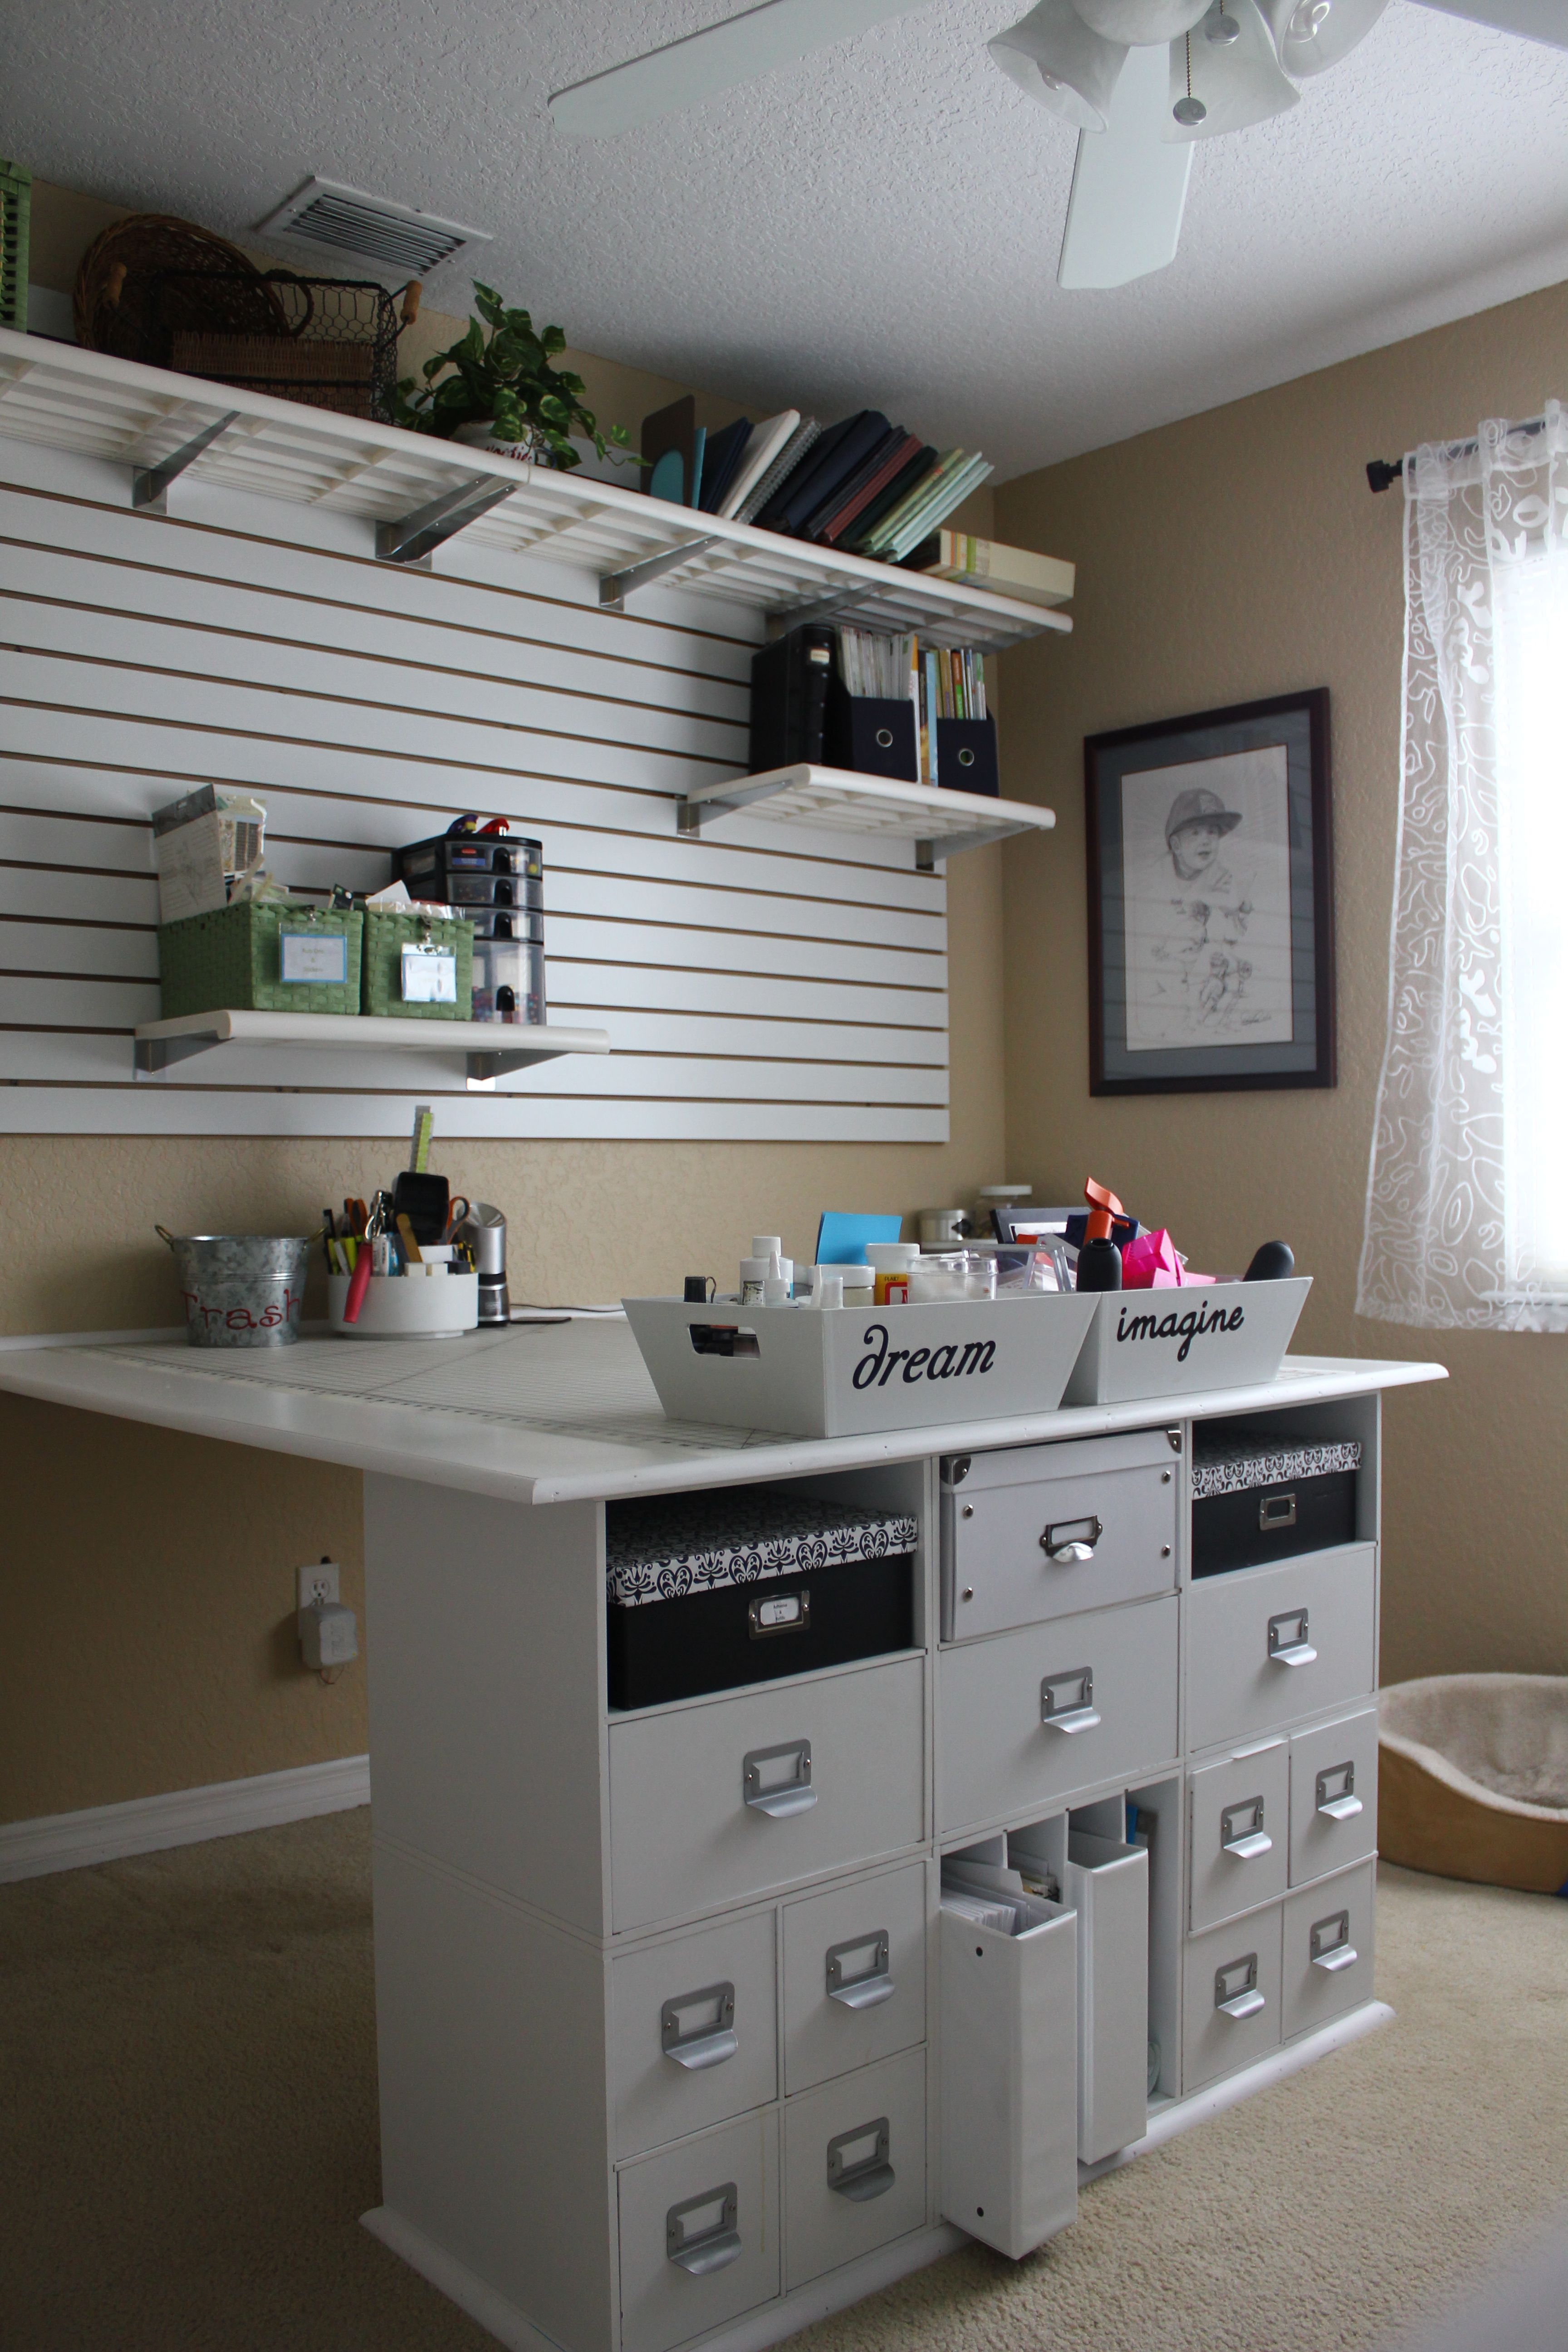 10x10 Room Layout Craft: Desk Area. Love How Neat And Clean This Area Looks. So